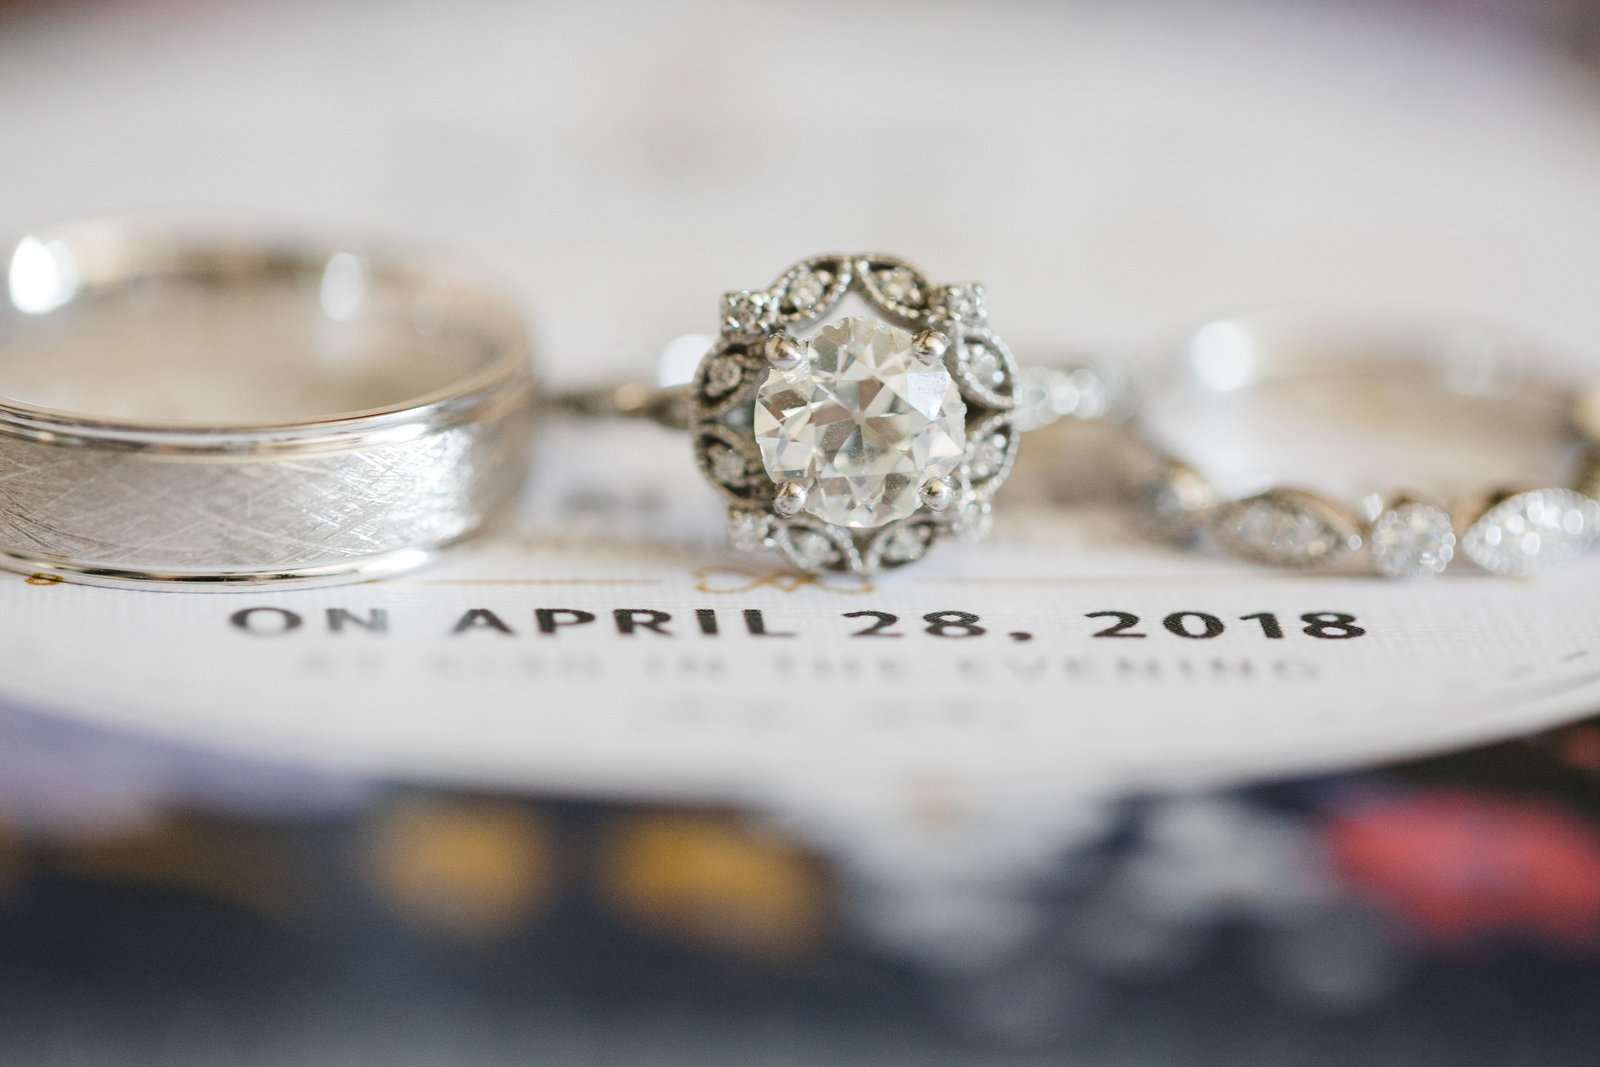 This close up of Joey's grandmother's diamond set in her wedding band with their invitation to show their wedding date of April 28, 2018